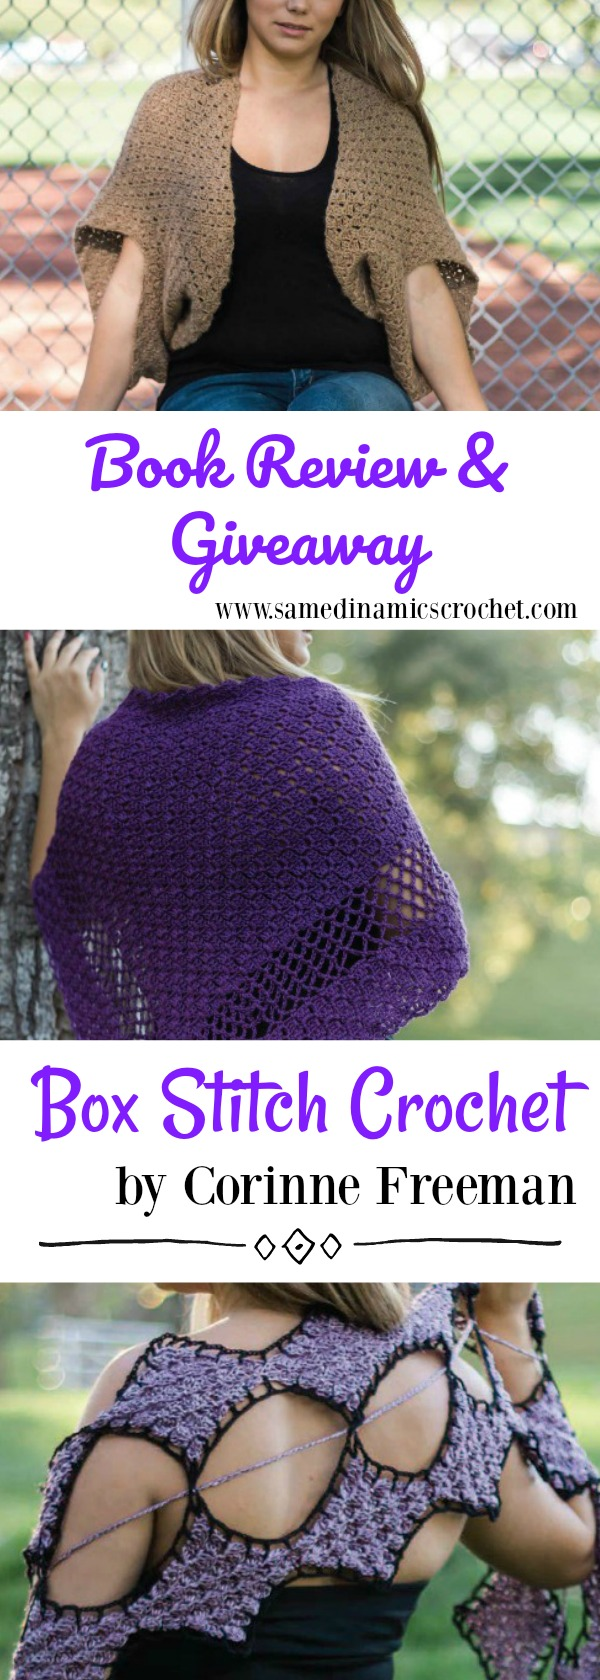 The Box Stitch Crochet is more than just a corner to corner stitch, it's an elegant stitch! Enter for your chance to win a copy.